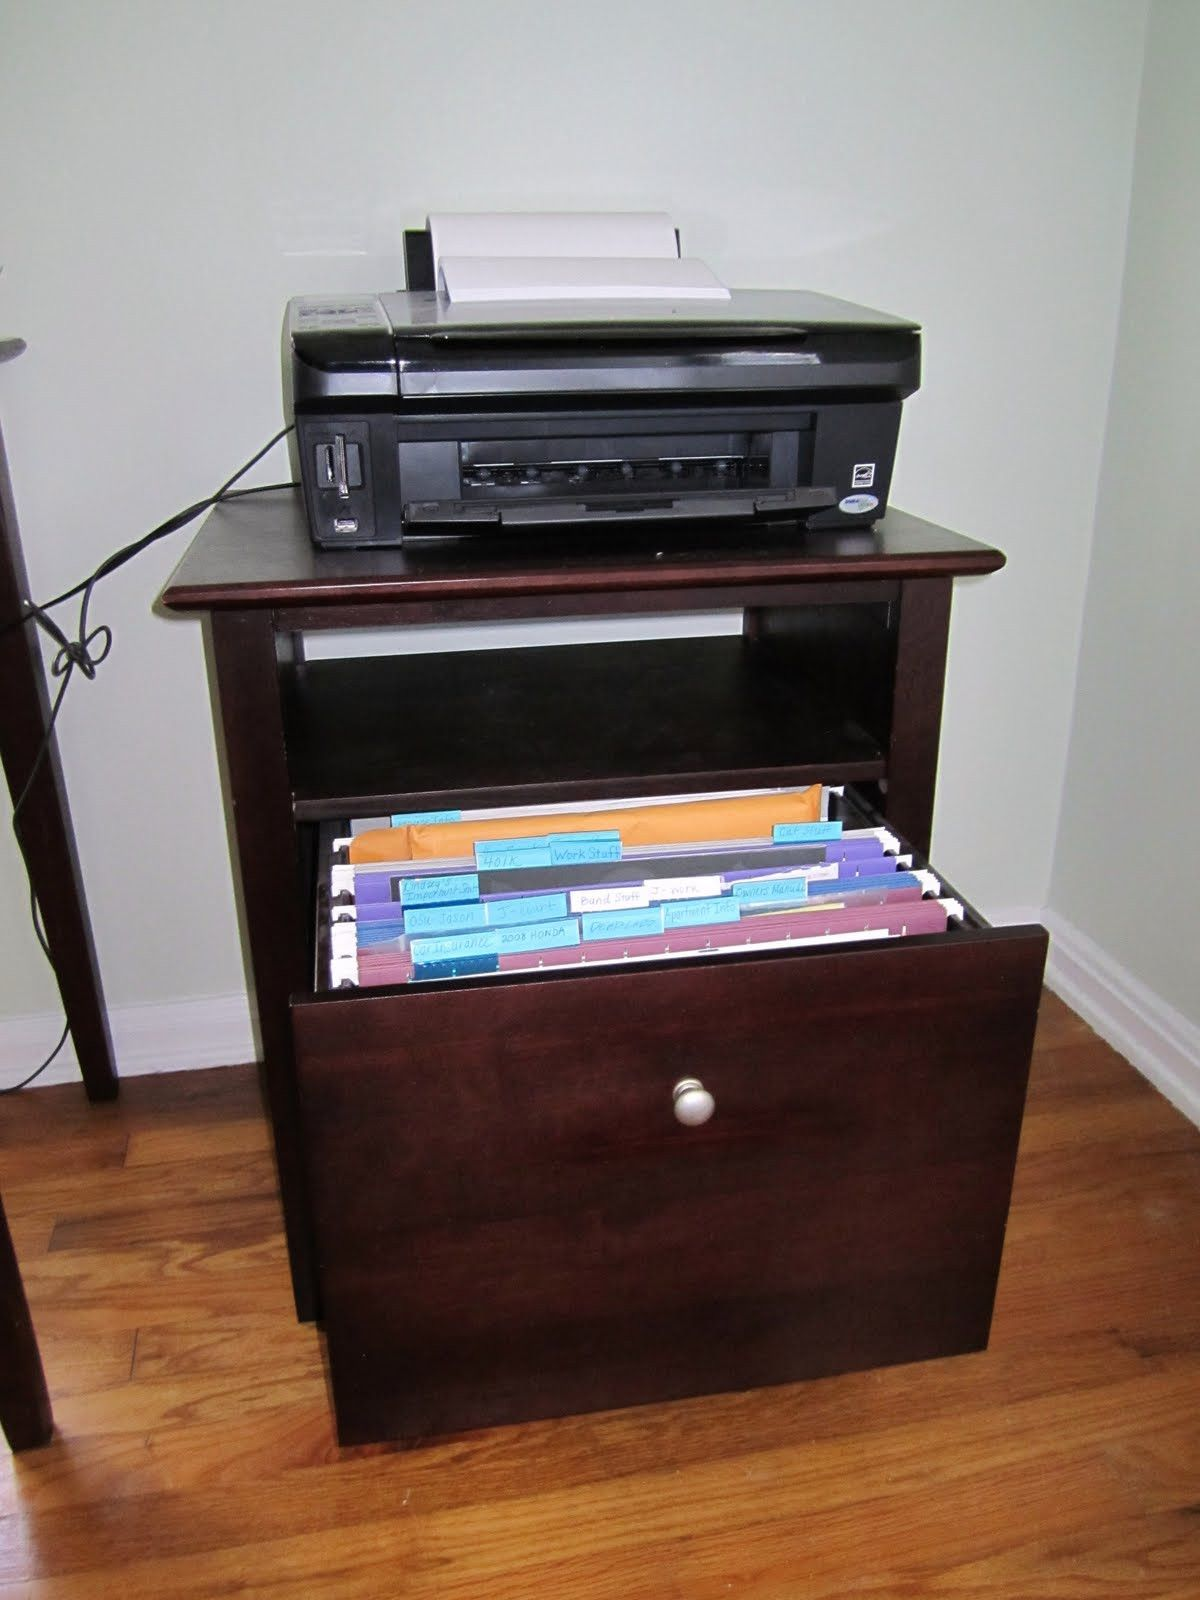 77 Printer Stand File Cabinet Kitchen Remodeling Ideas On A Small Budget Check More